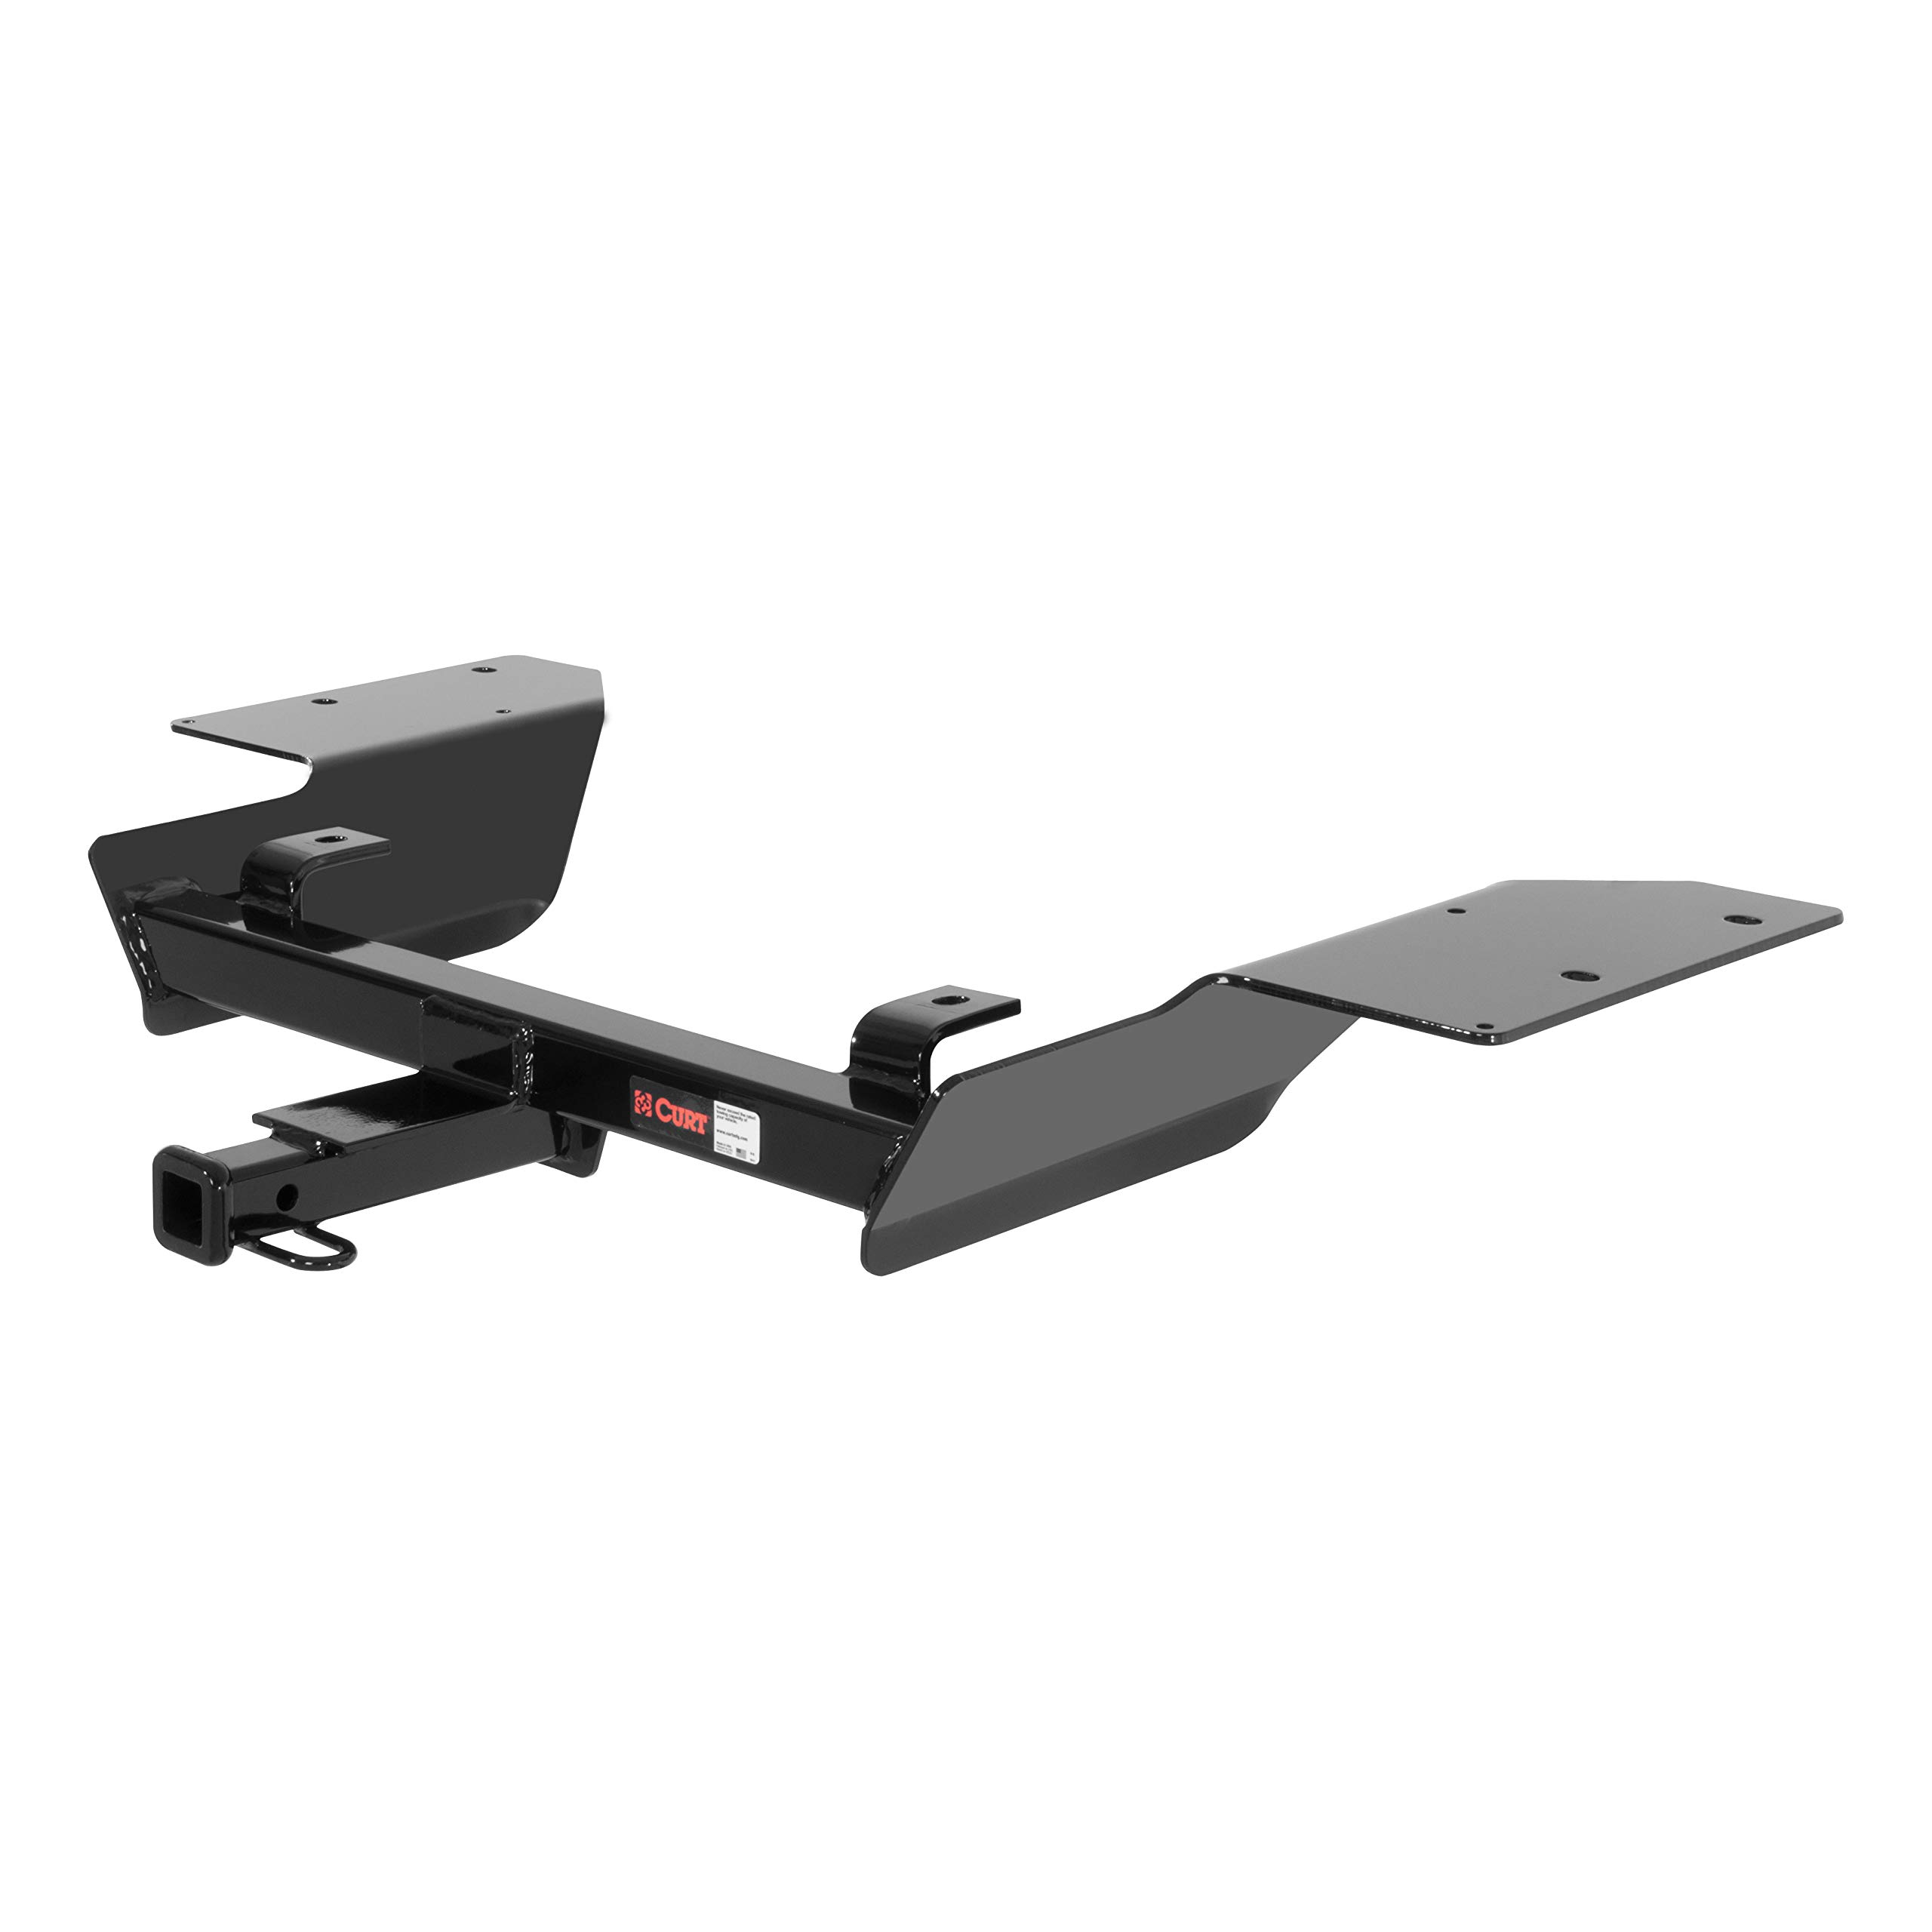 CURT 12252 Class 2 Trailer Hitch, 1-1/4-Inch Receiver Black 1-1/4'' Select Chevrolet Impala by CURT